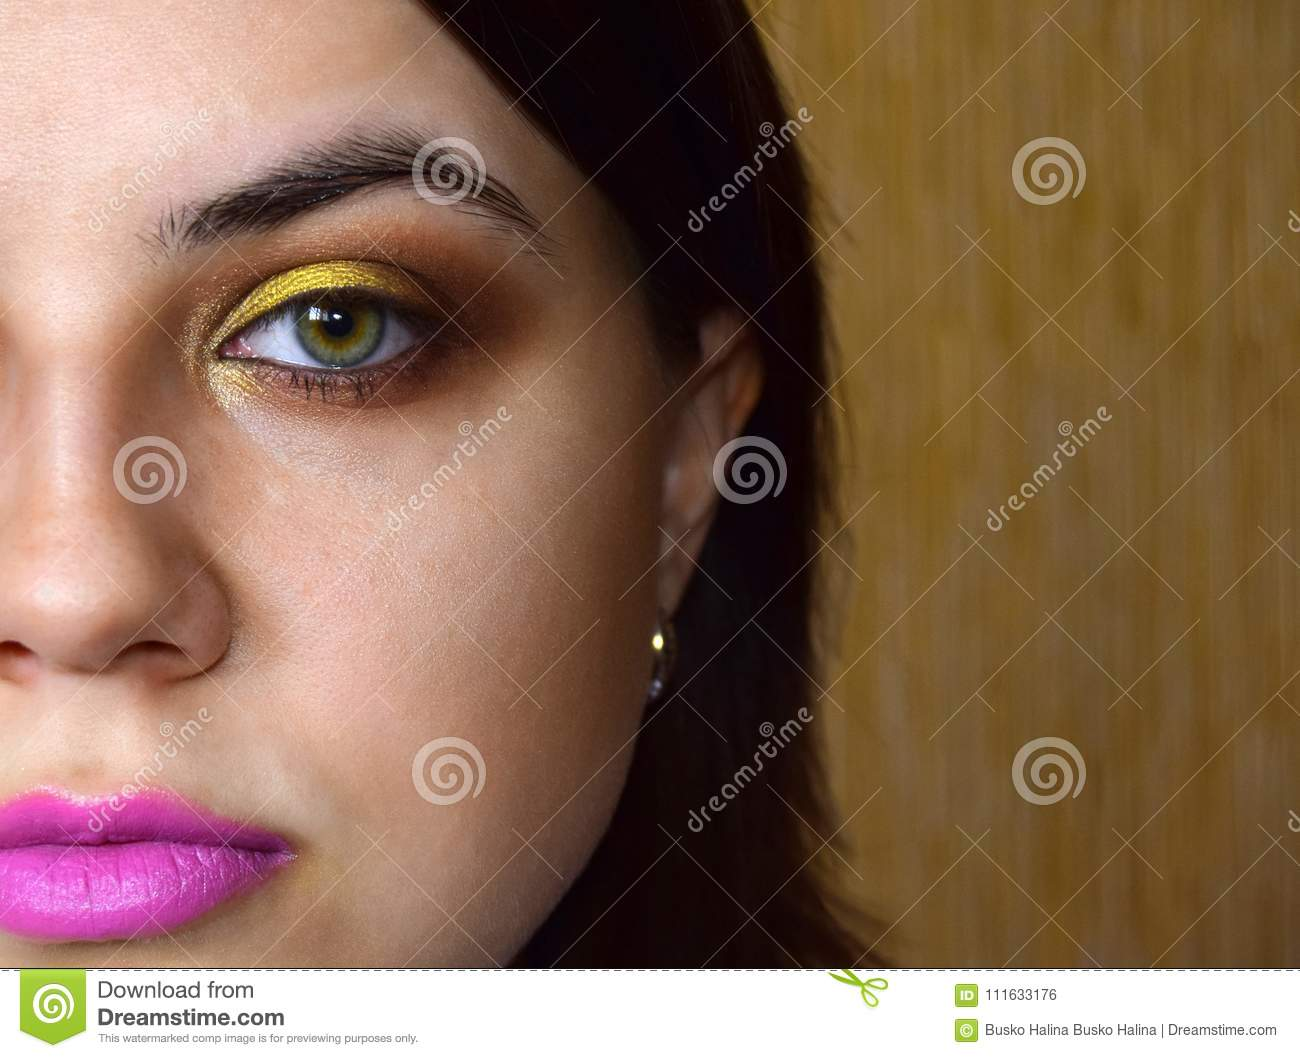 The Girl Has A Makeup Of A Green Eye In Yellow And Gold Tones On